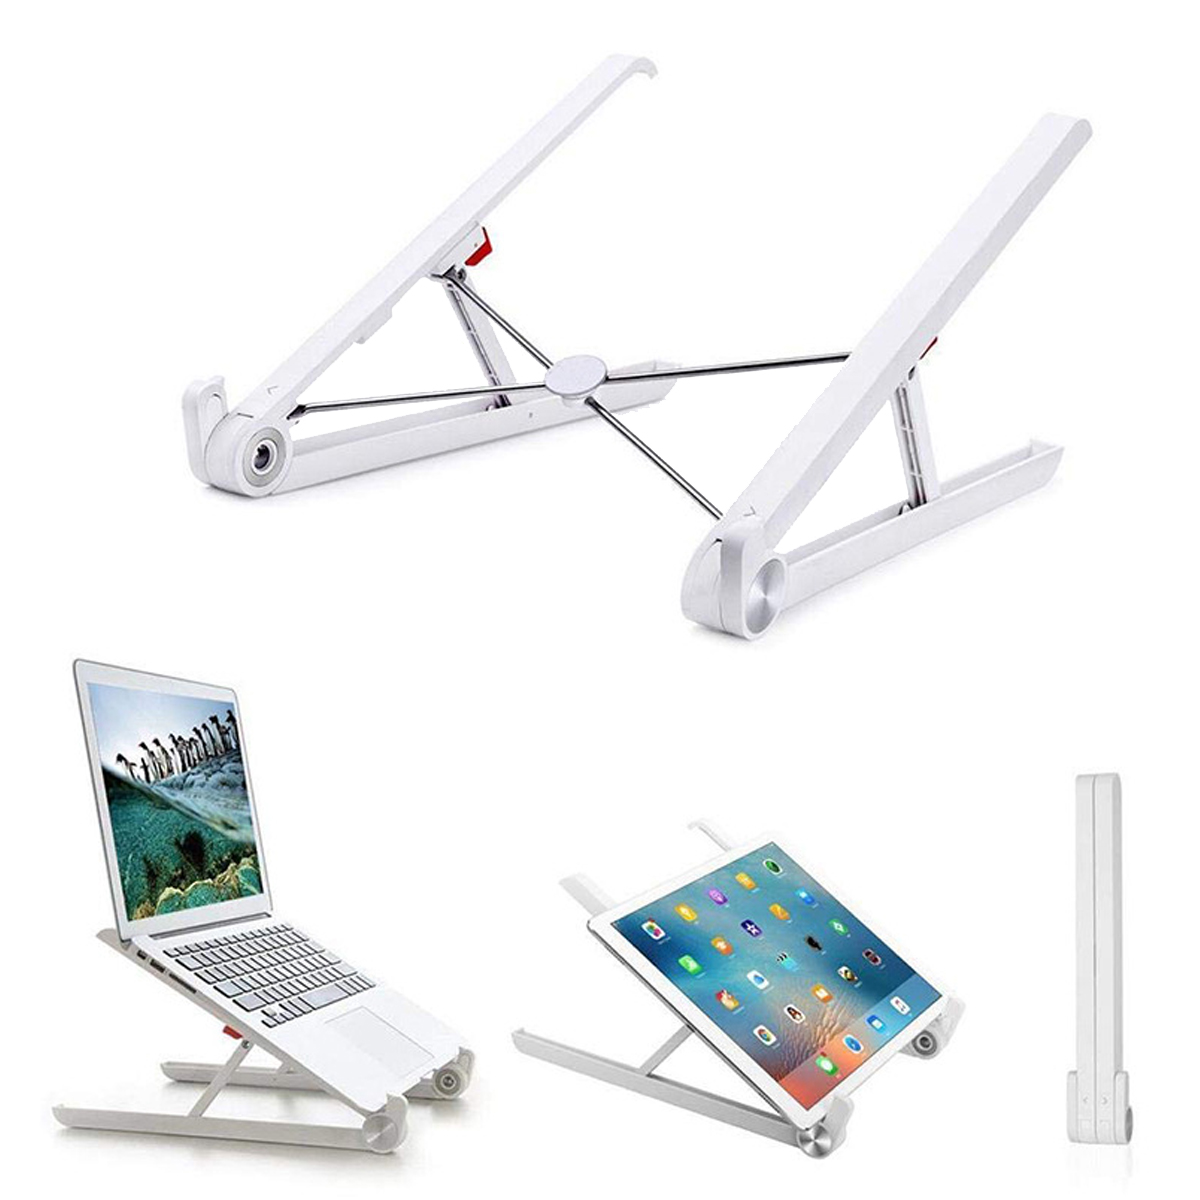 Portable Desktop Foldable Height Adjustable Notebook Stand Heat Dissipation For Notebook MacBook 11.0-17.0 Inches